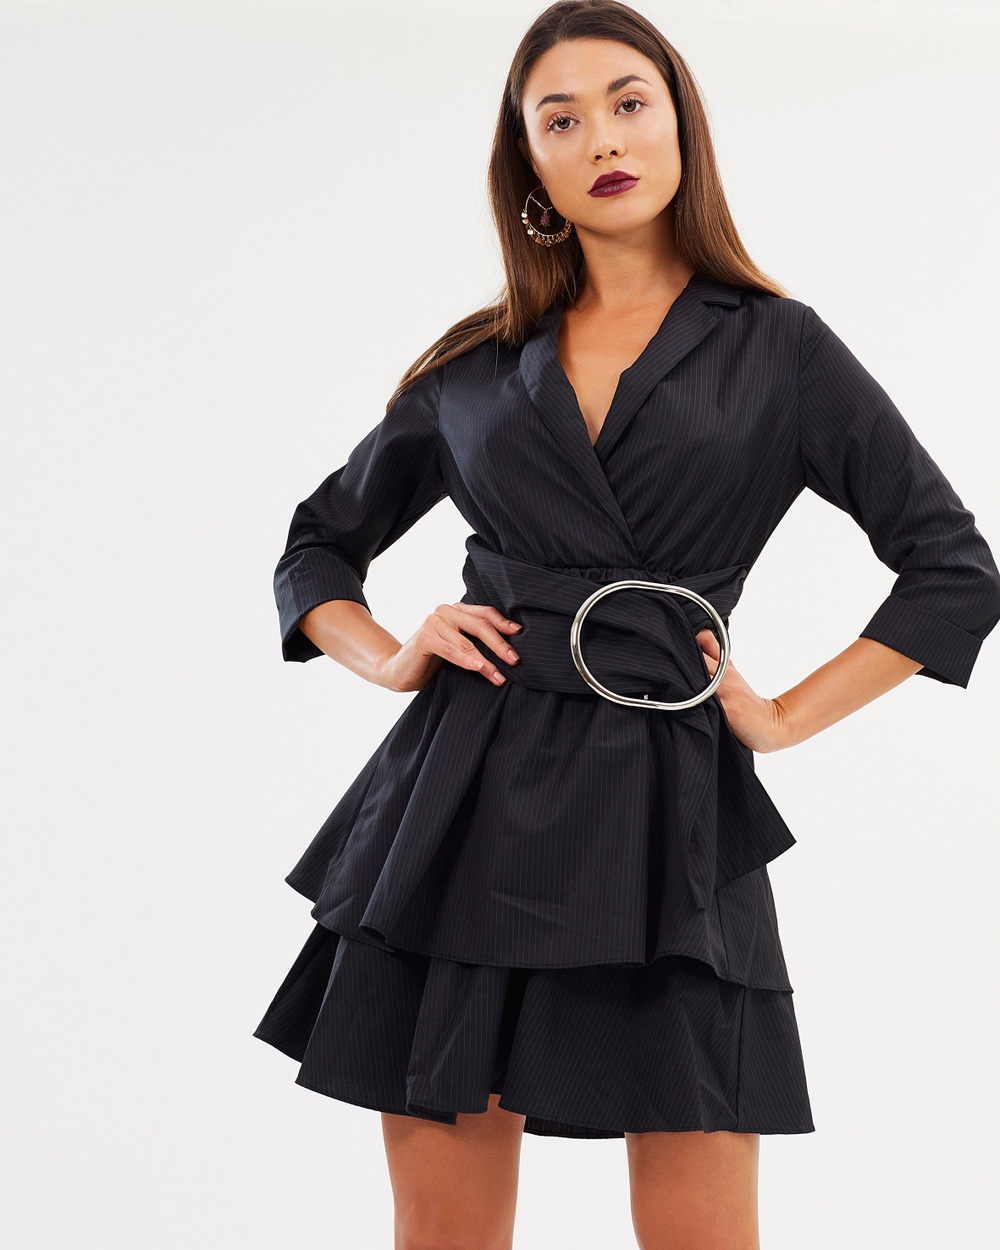 Lost Ink Pinstripe Metal Ring Wrap Fit and Flare Dress Dresses Black Pinstripe Metal Ring Wrap Fit-and-Flare Dress